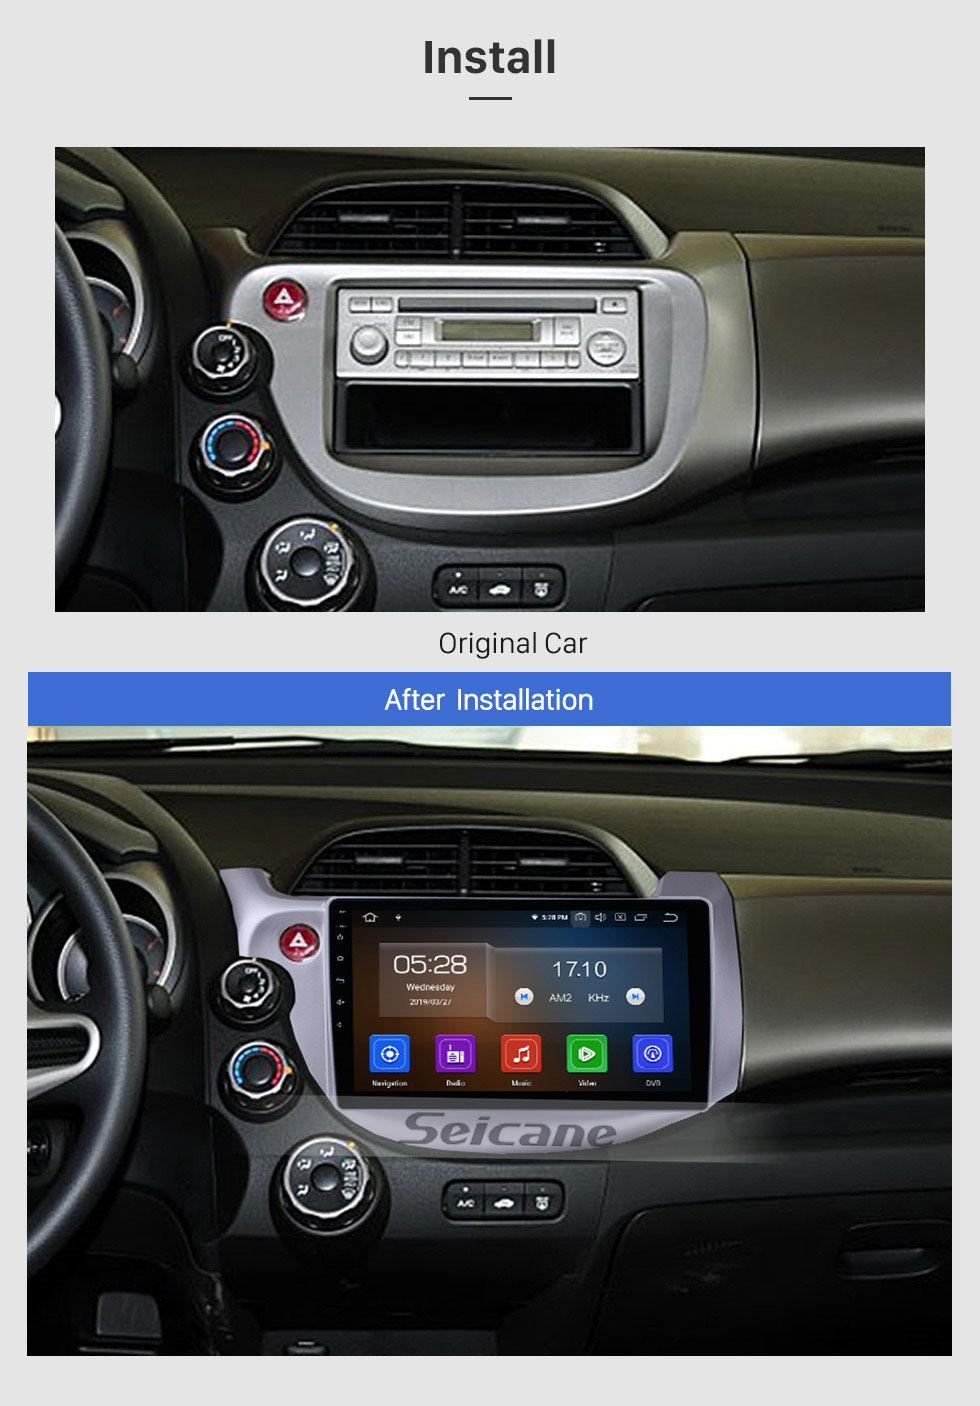 Seicane 2007-2013 Honda Fit (LHD) Android 10.0 10.1 inch GPS Navigation System with Bluetooth Radio OBD2 Backup Camera Digital TV Steering wheel Control Mirror Link